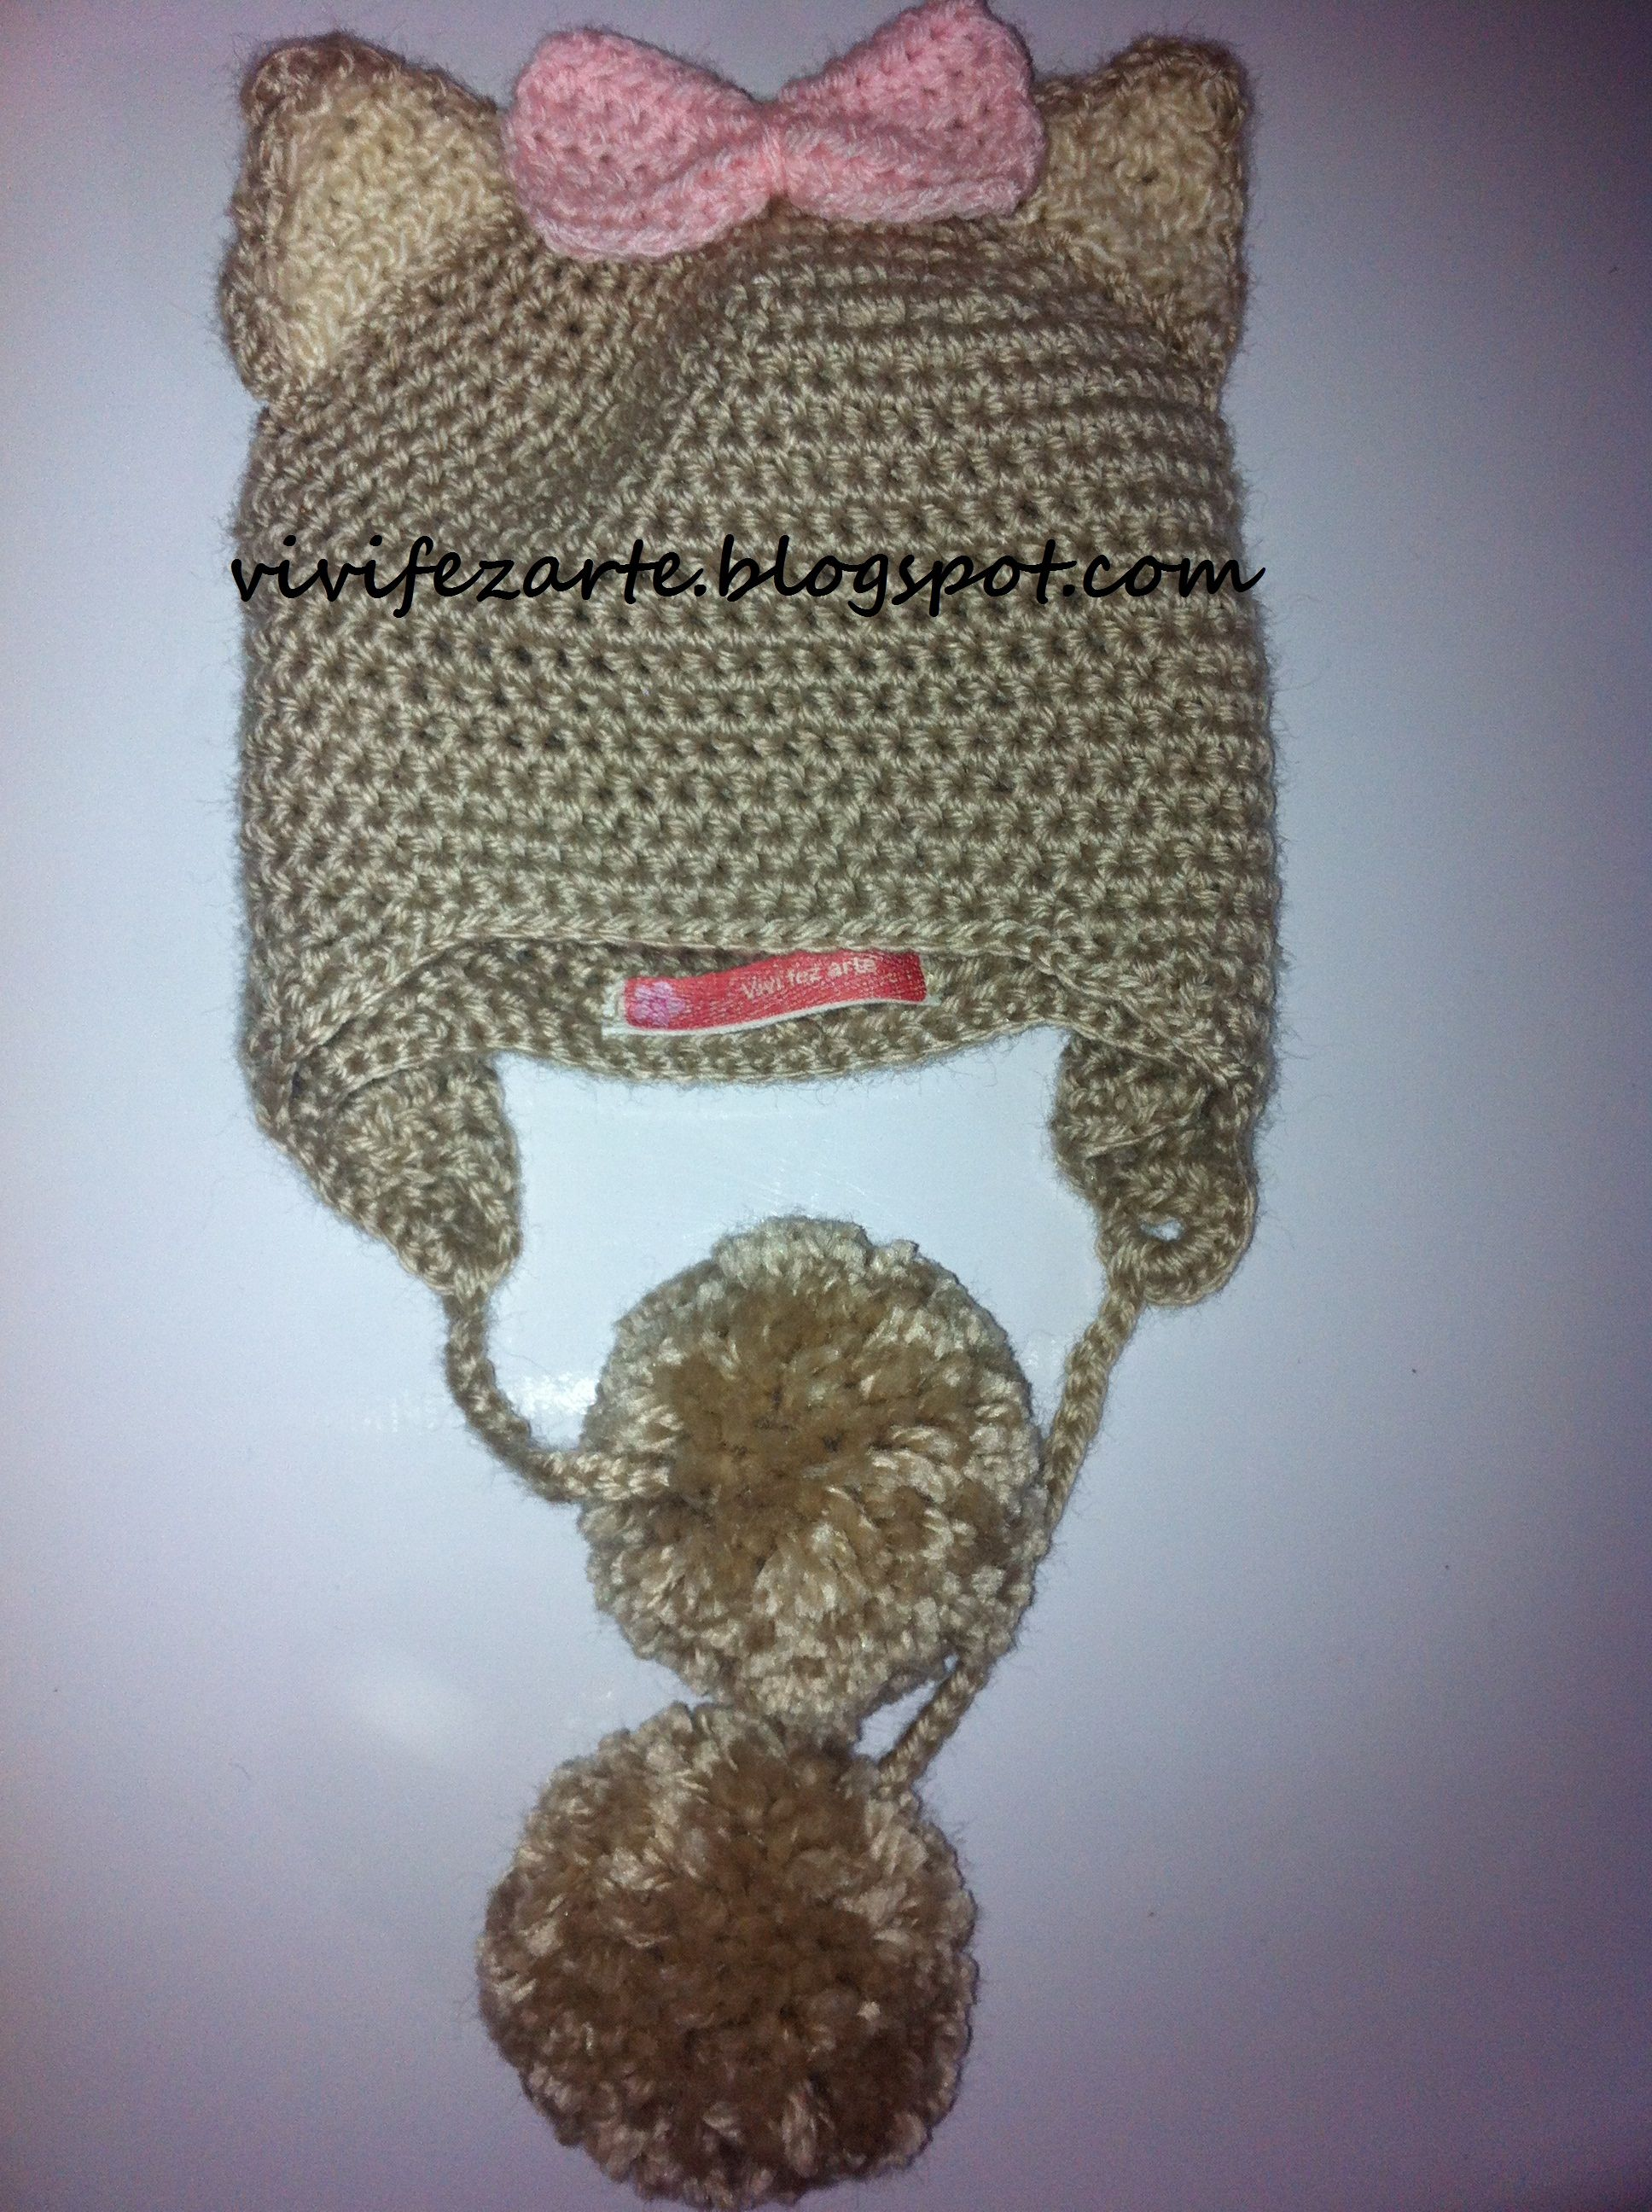 Crochet Cat Hat : Cat crochet hat Crochet & Co. Pinterest